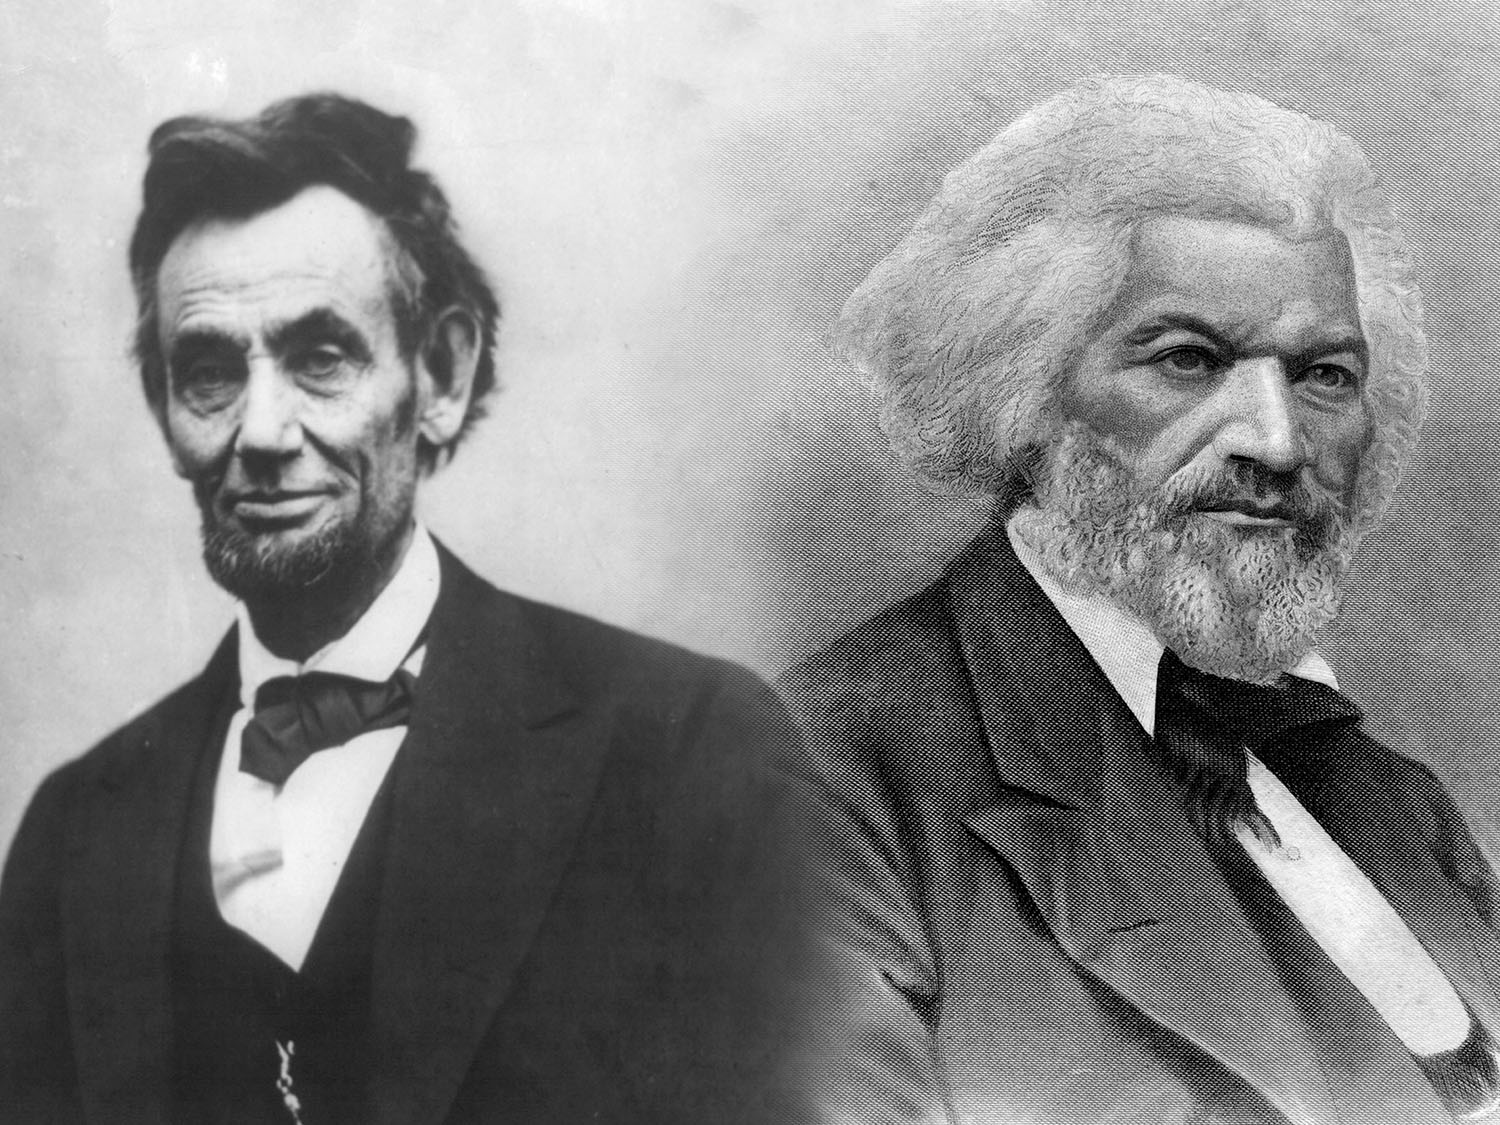 abraham lincoln and frederick douglass a compare and contrast abraham lincoln and frederick douglass a compare and contrast lesson plan